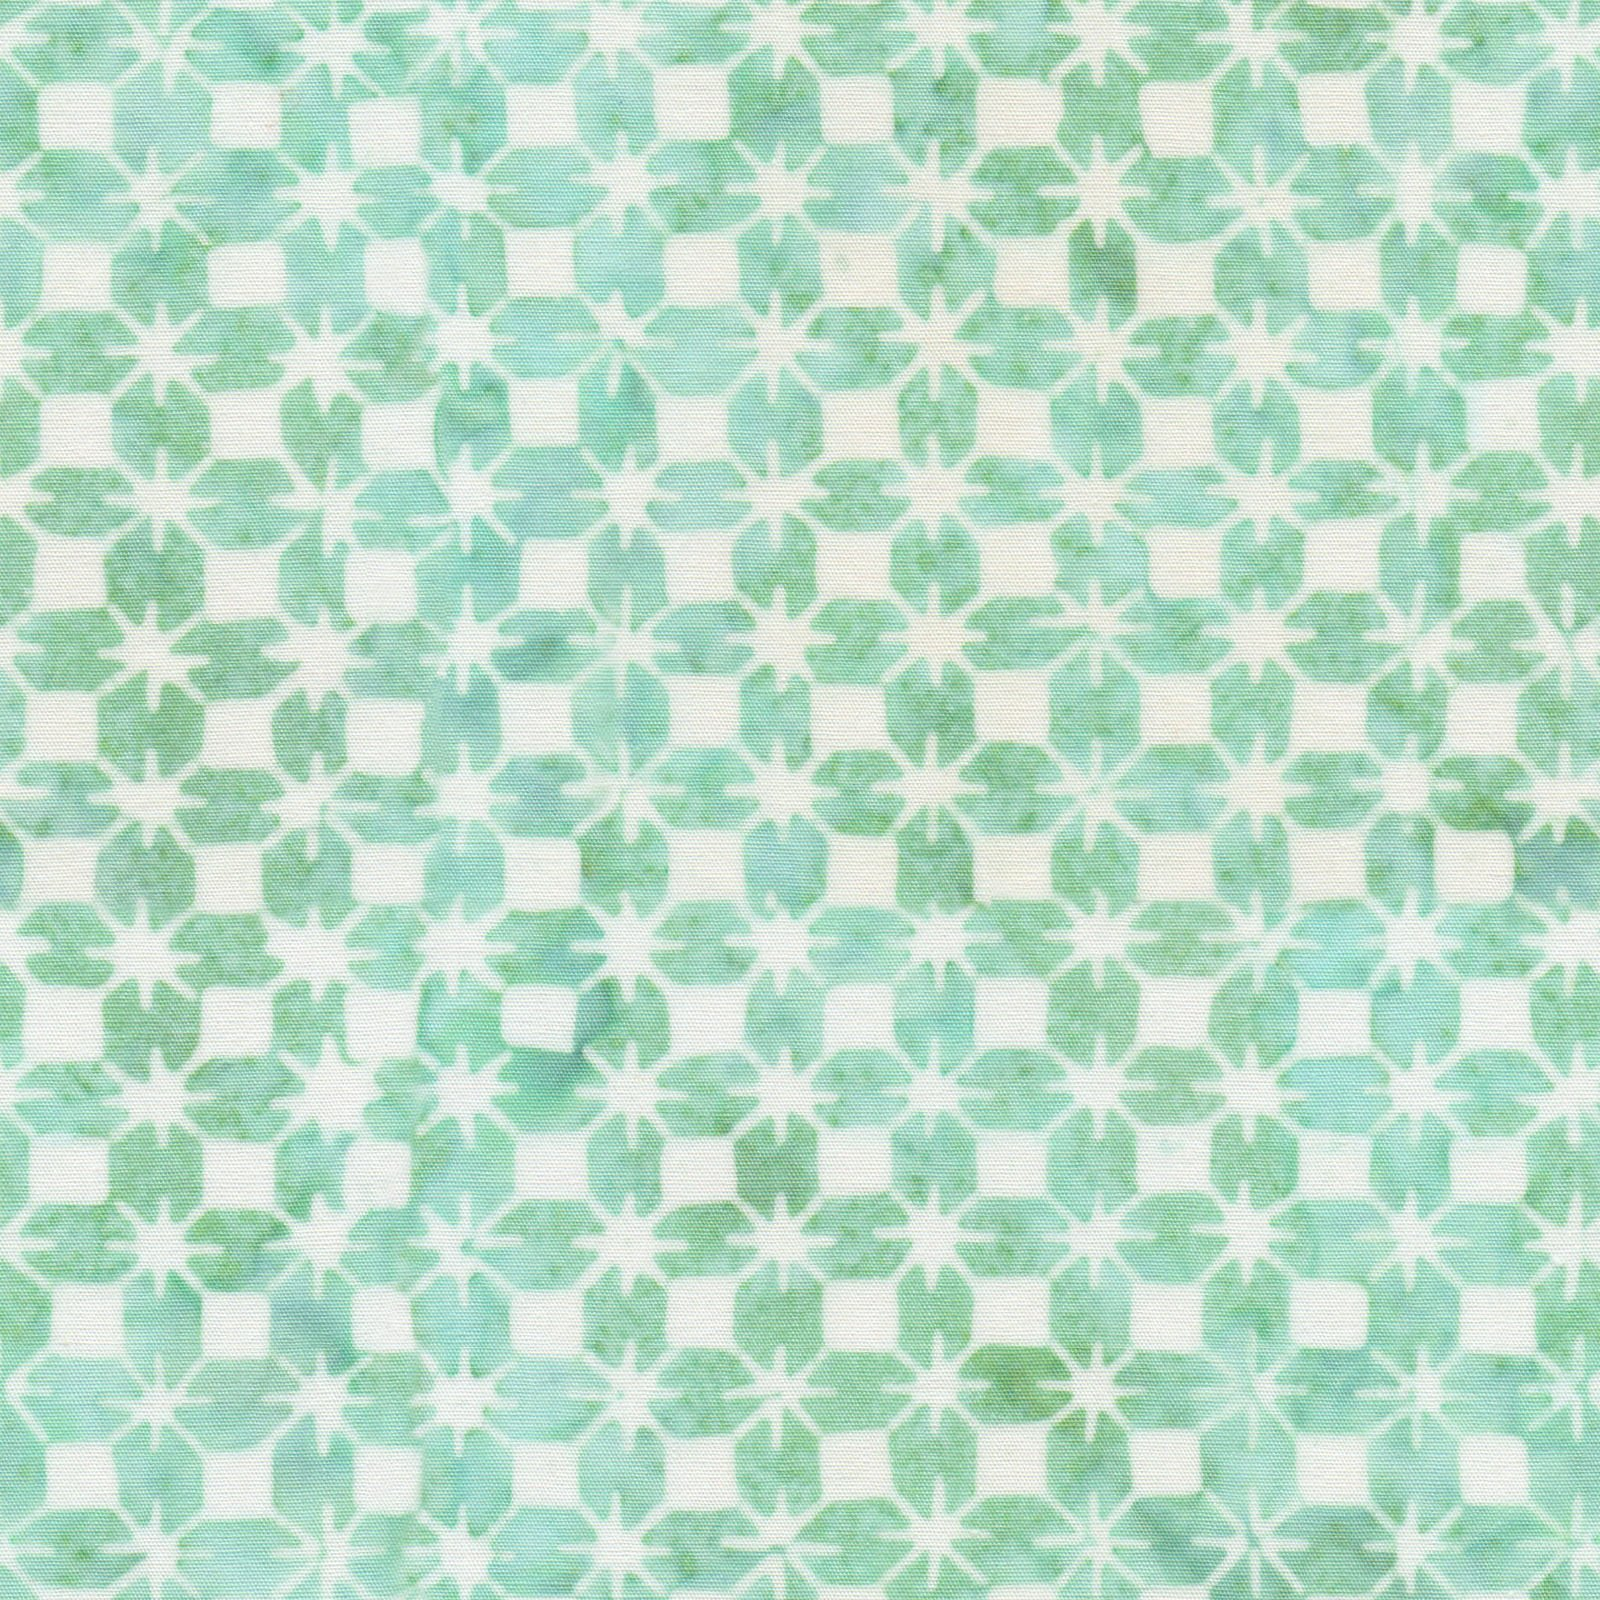 EESC-B55 Q - COLOR THERAPY BATIKS BY MAYWOOD STUDIO STARS TEAL - ARRIVING DECEMBER 2020